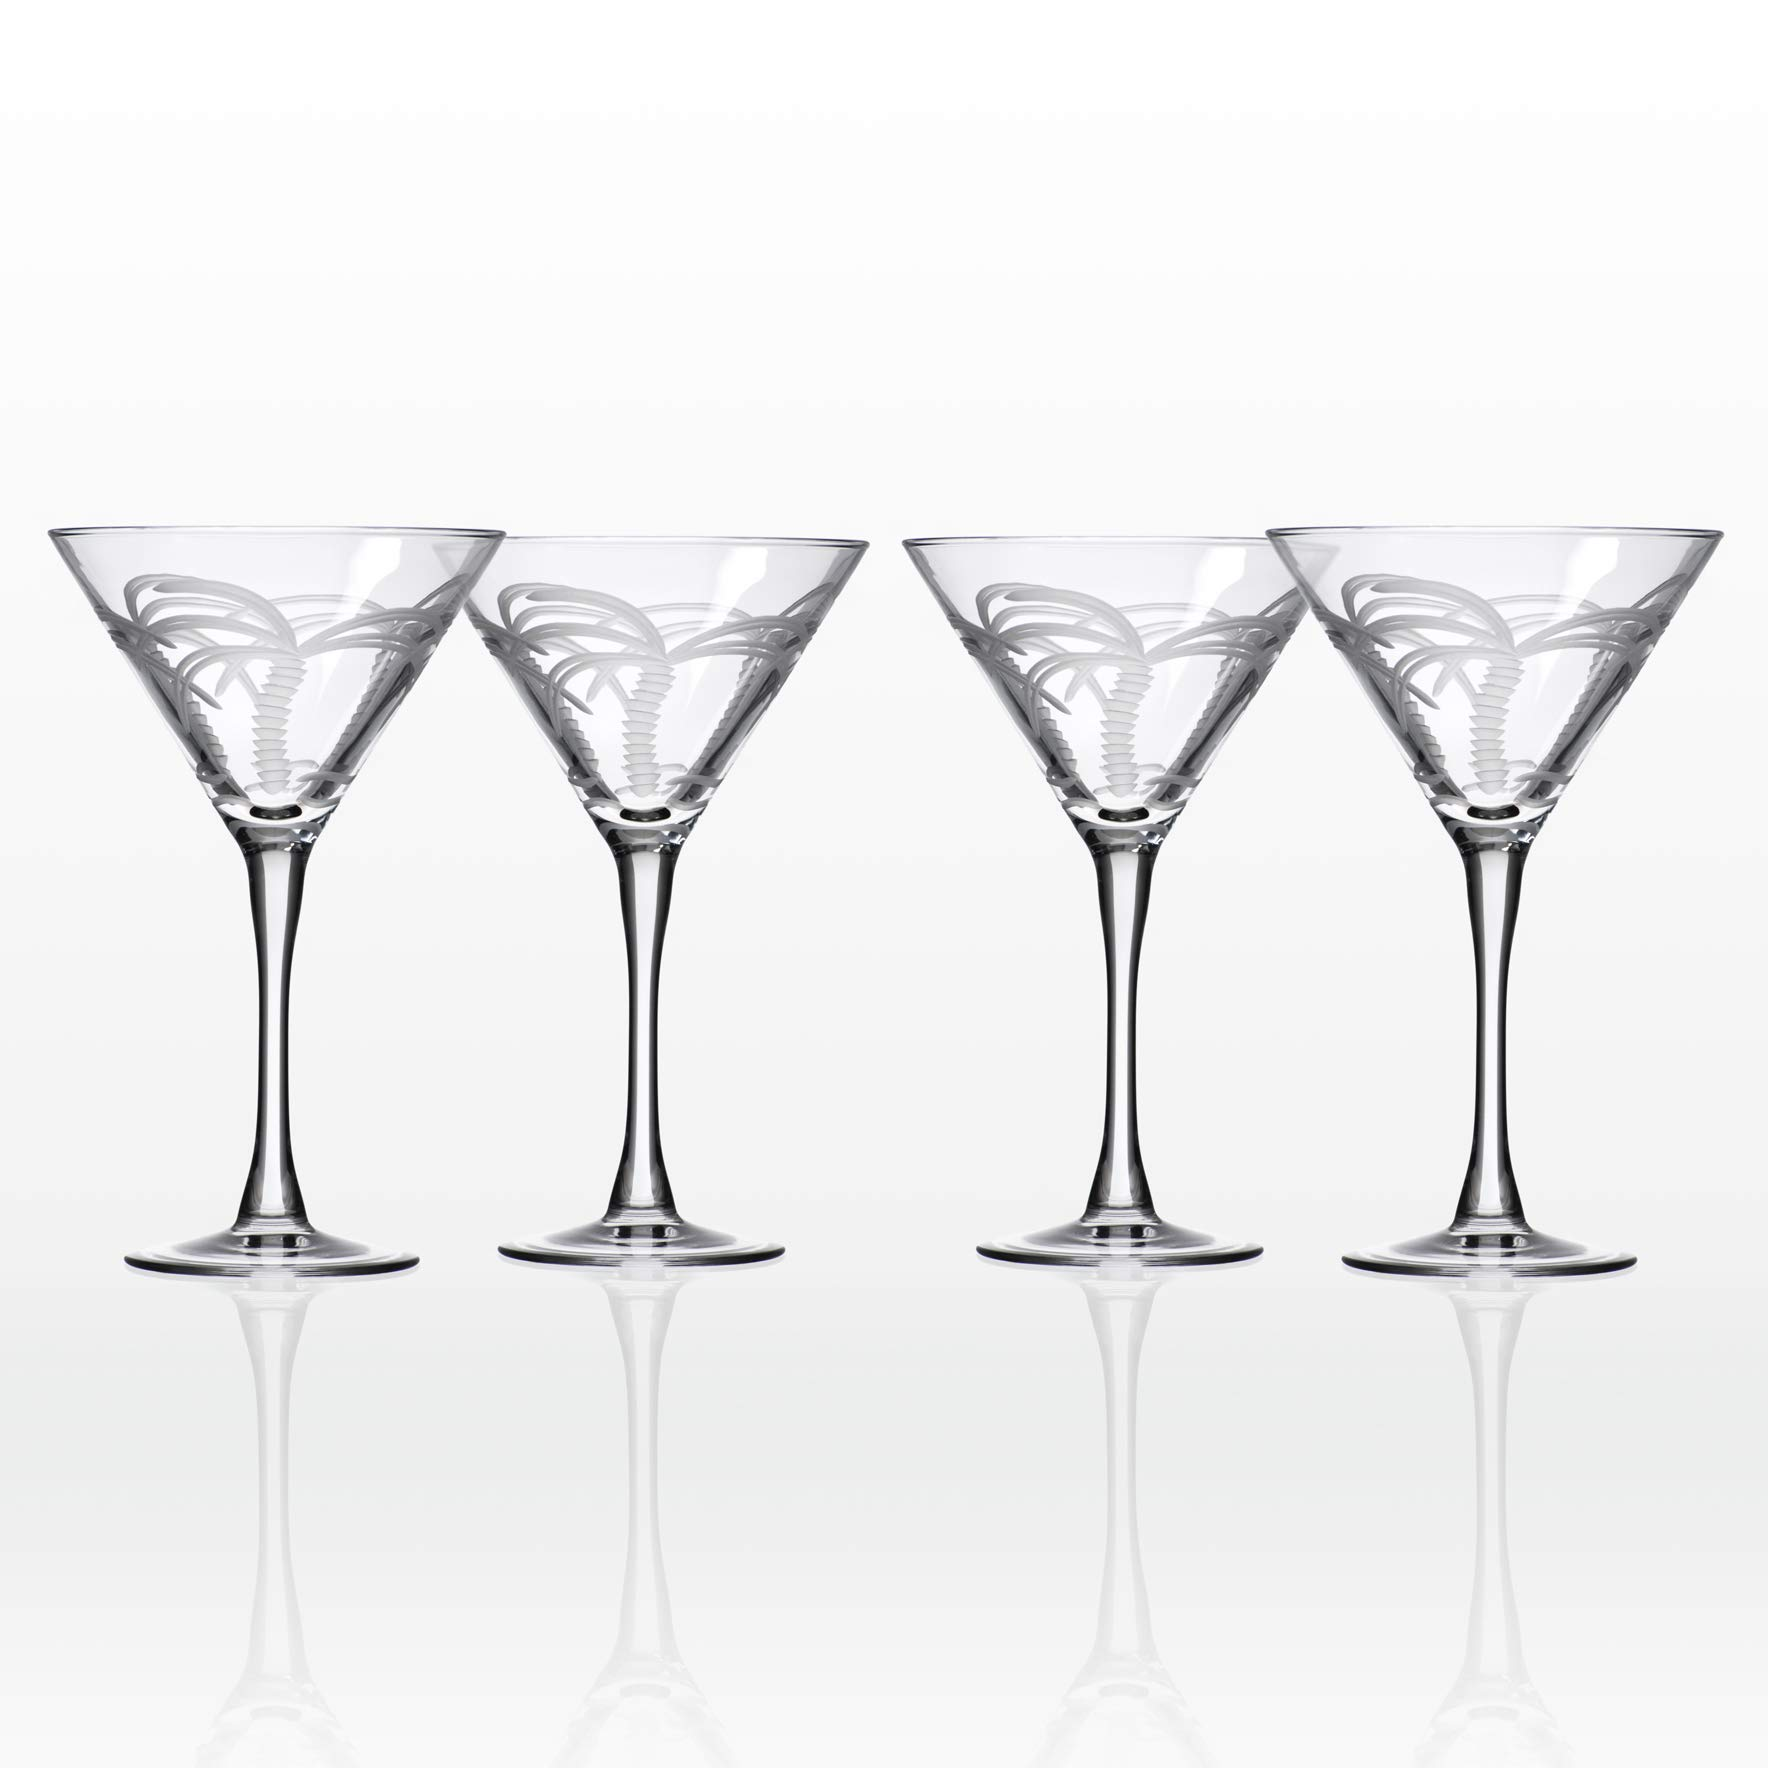 Rolf Glass Palm Tree Martini Glass, 10 Ounce, Set of 4 by Rolf Glass